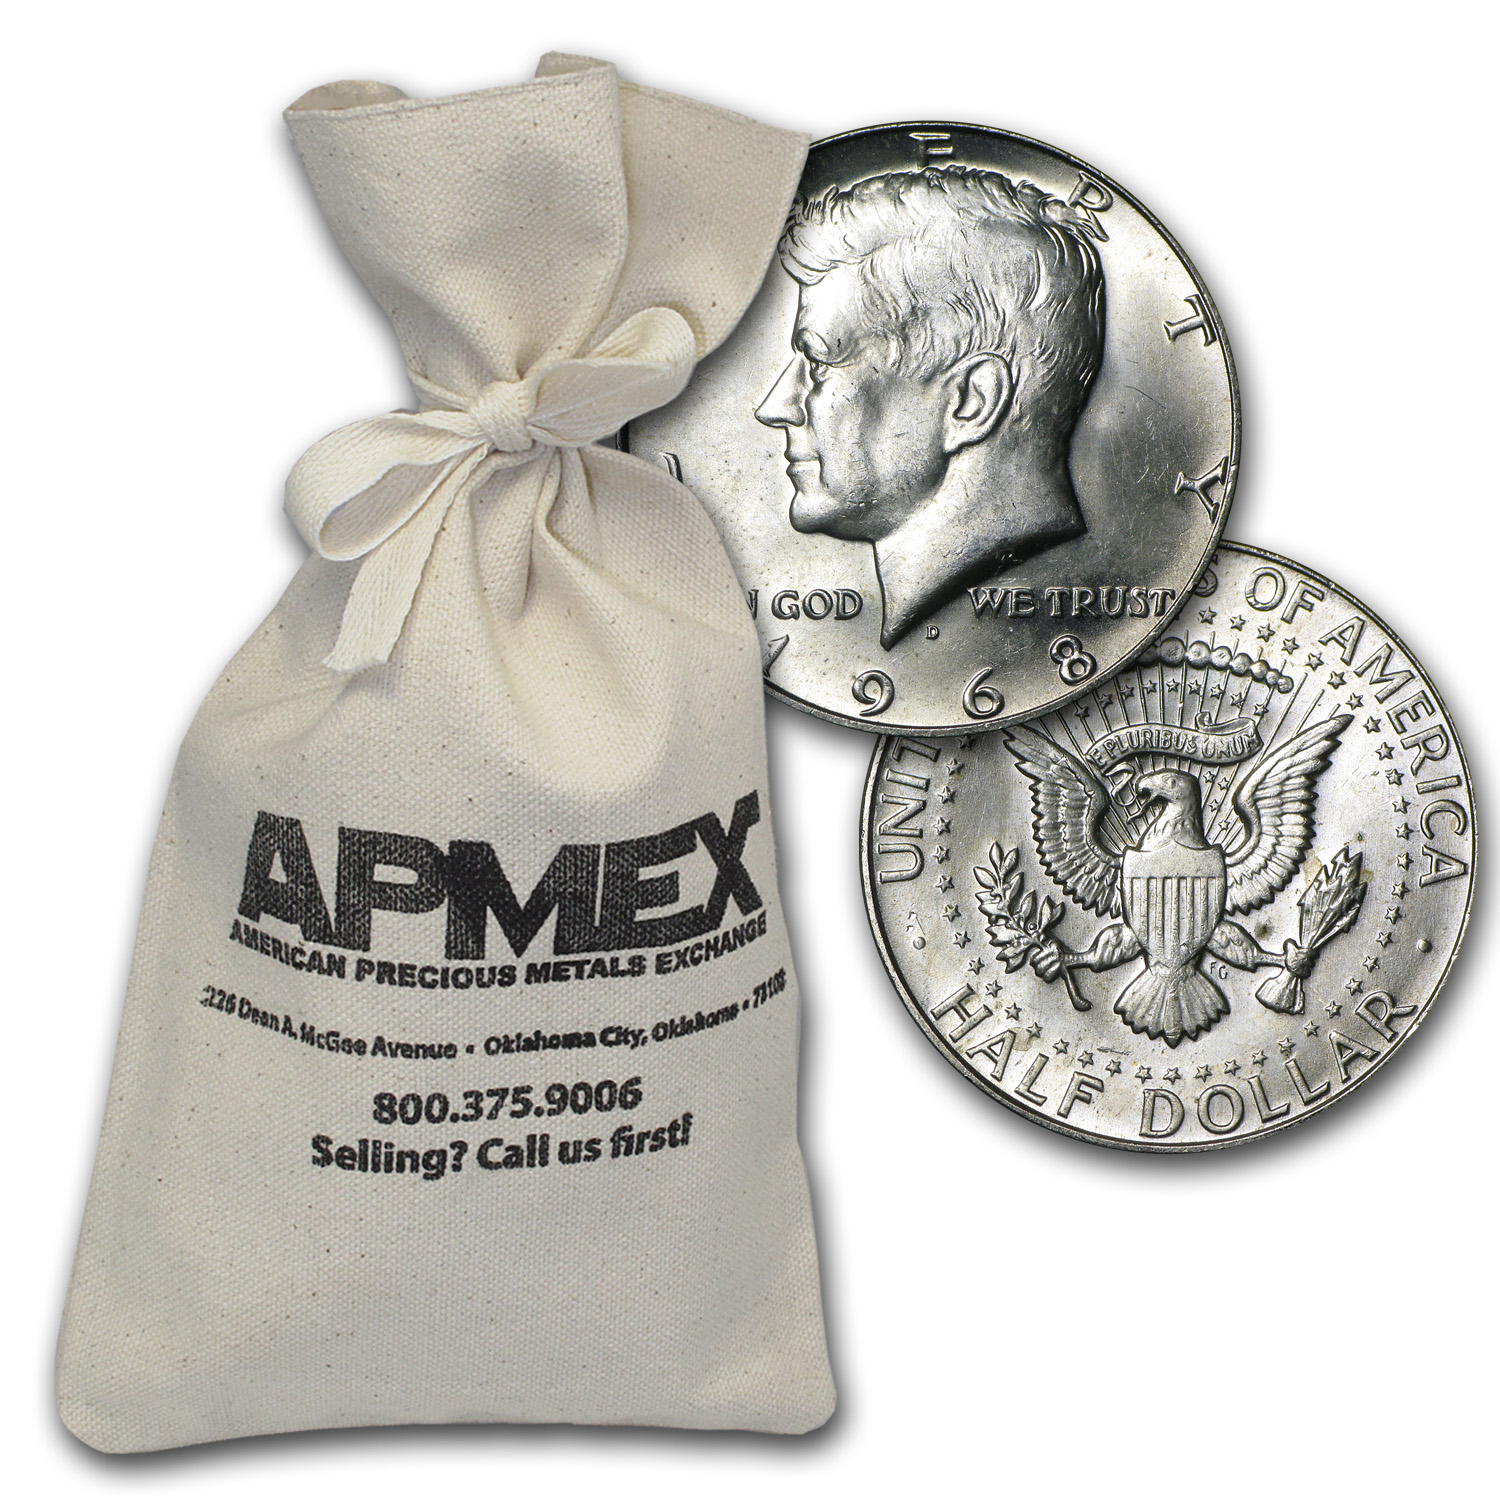 40% Silver Coins - $500 Face Value Bag